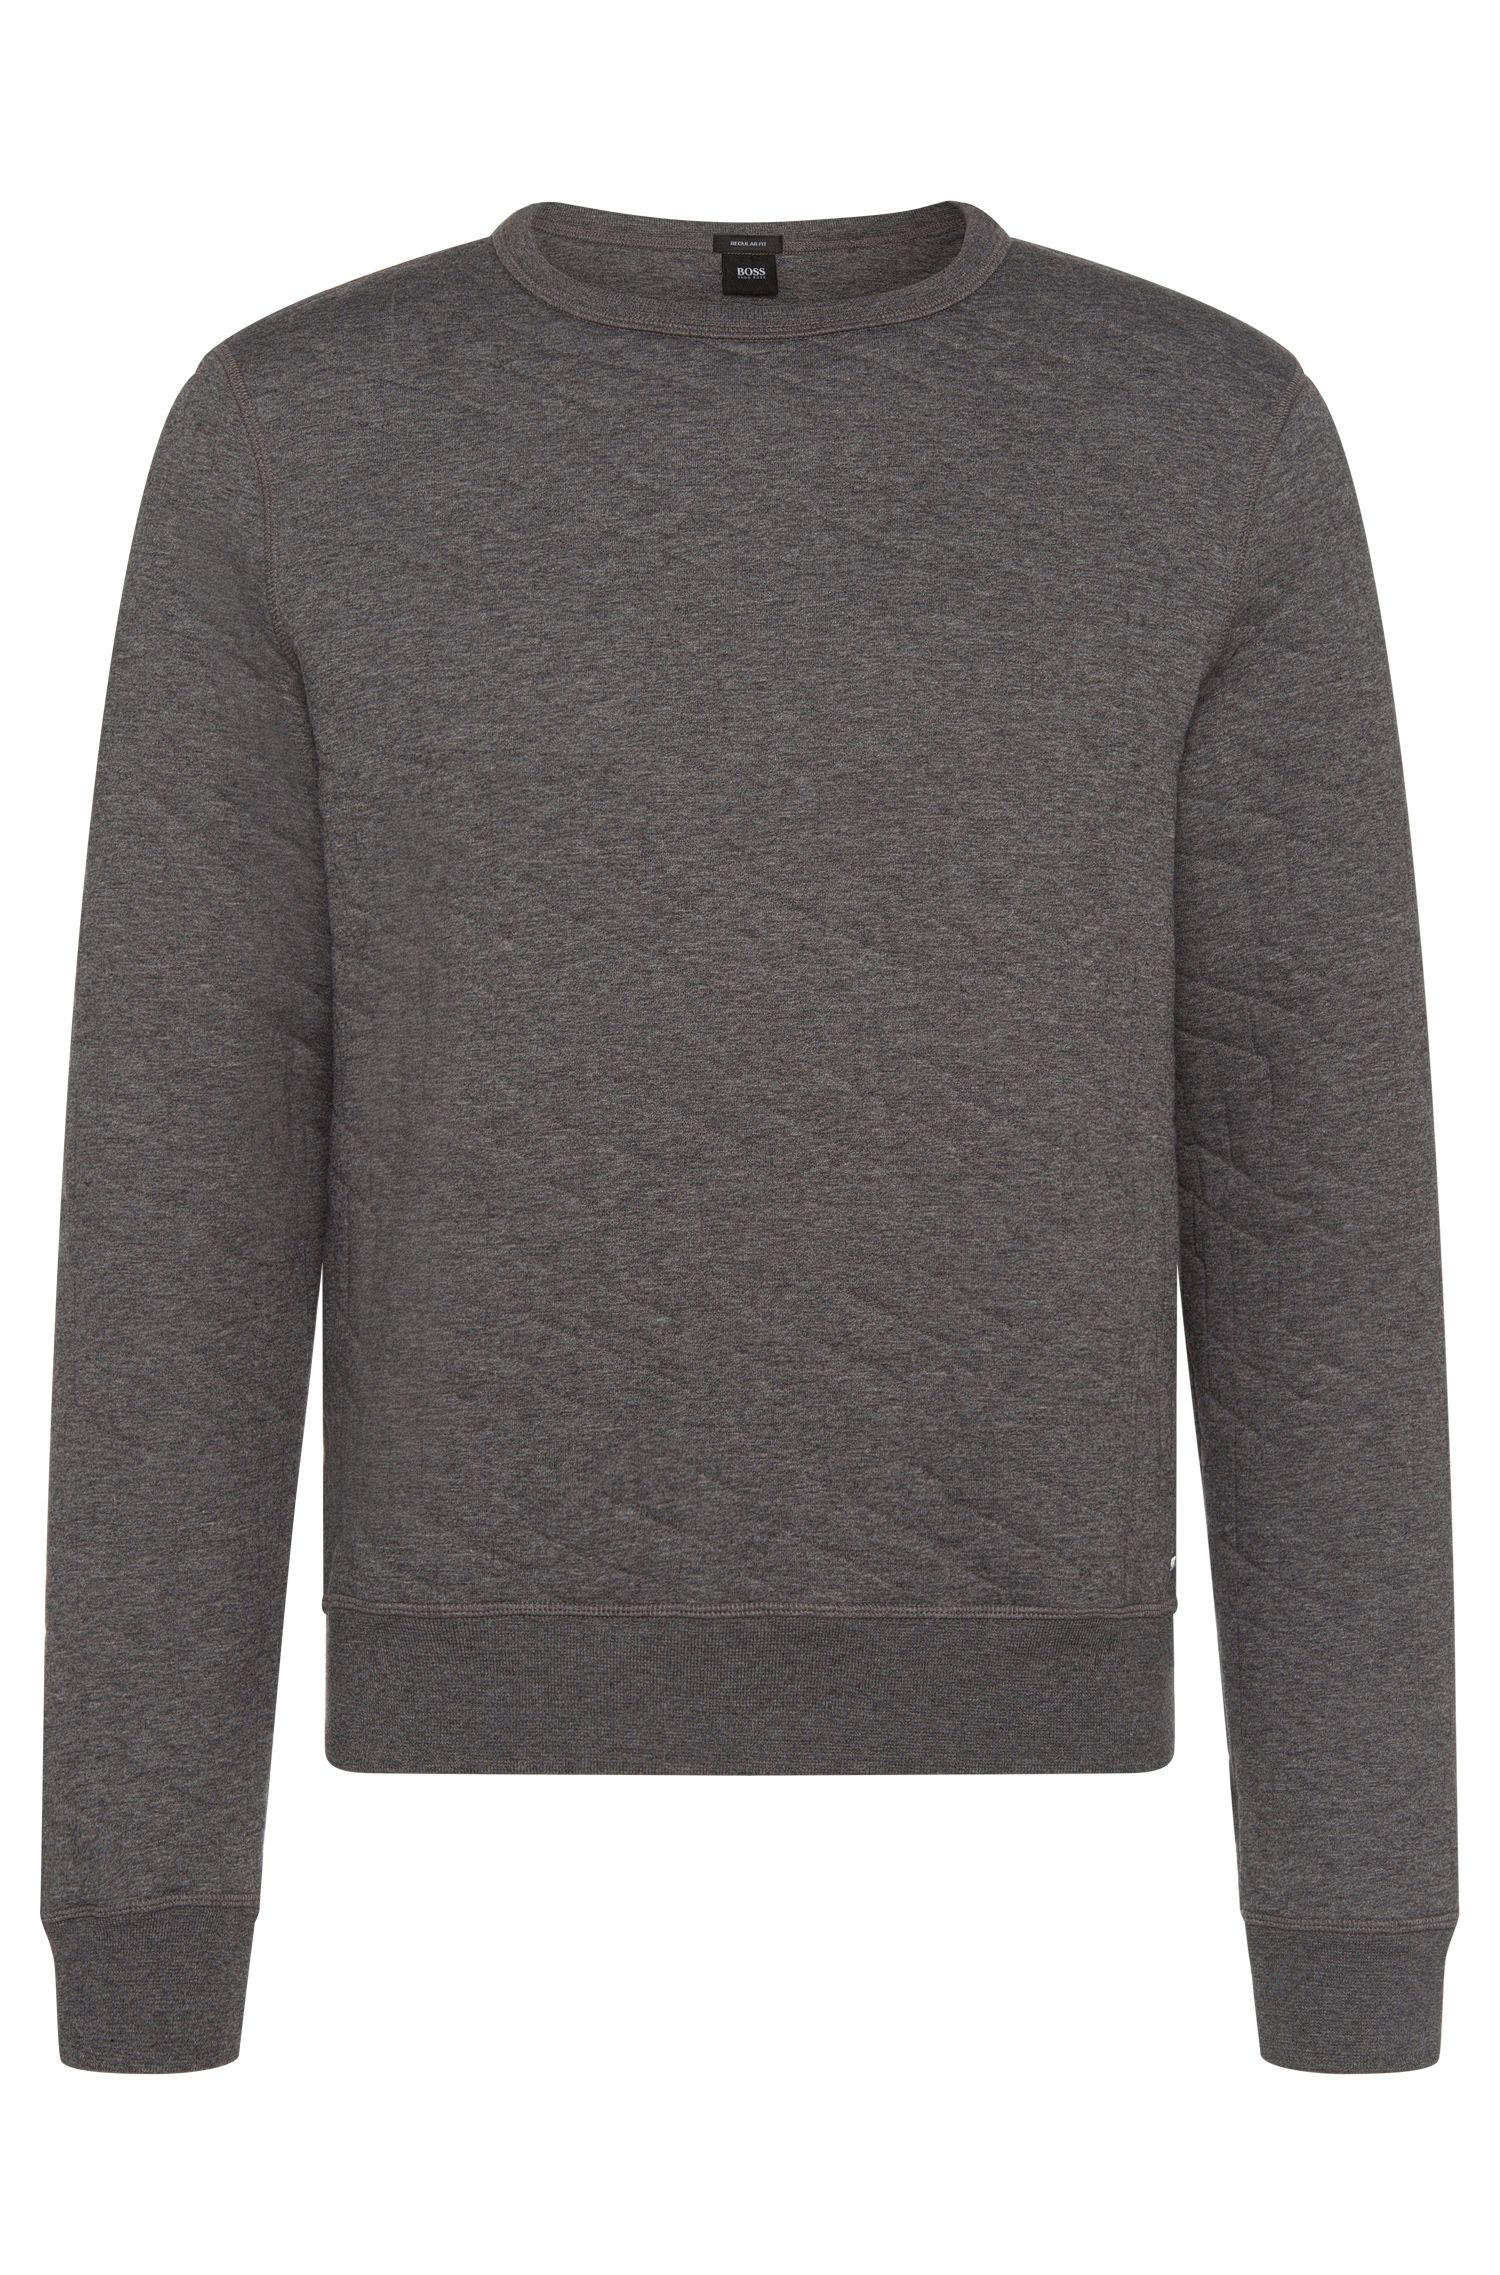 Sweat Regular Fit chiné en coton mélangé : « Stadler 03 »